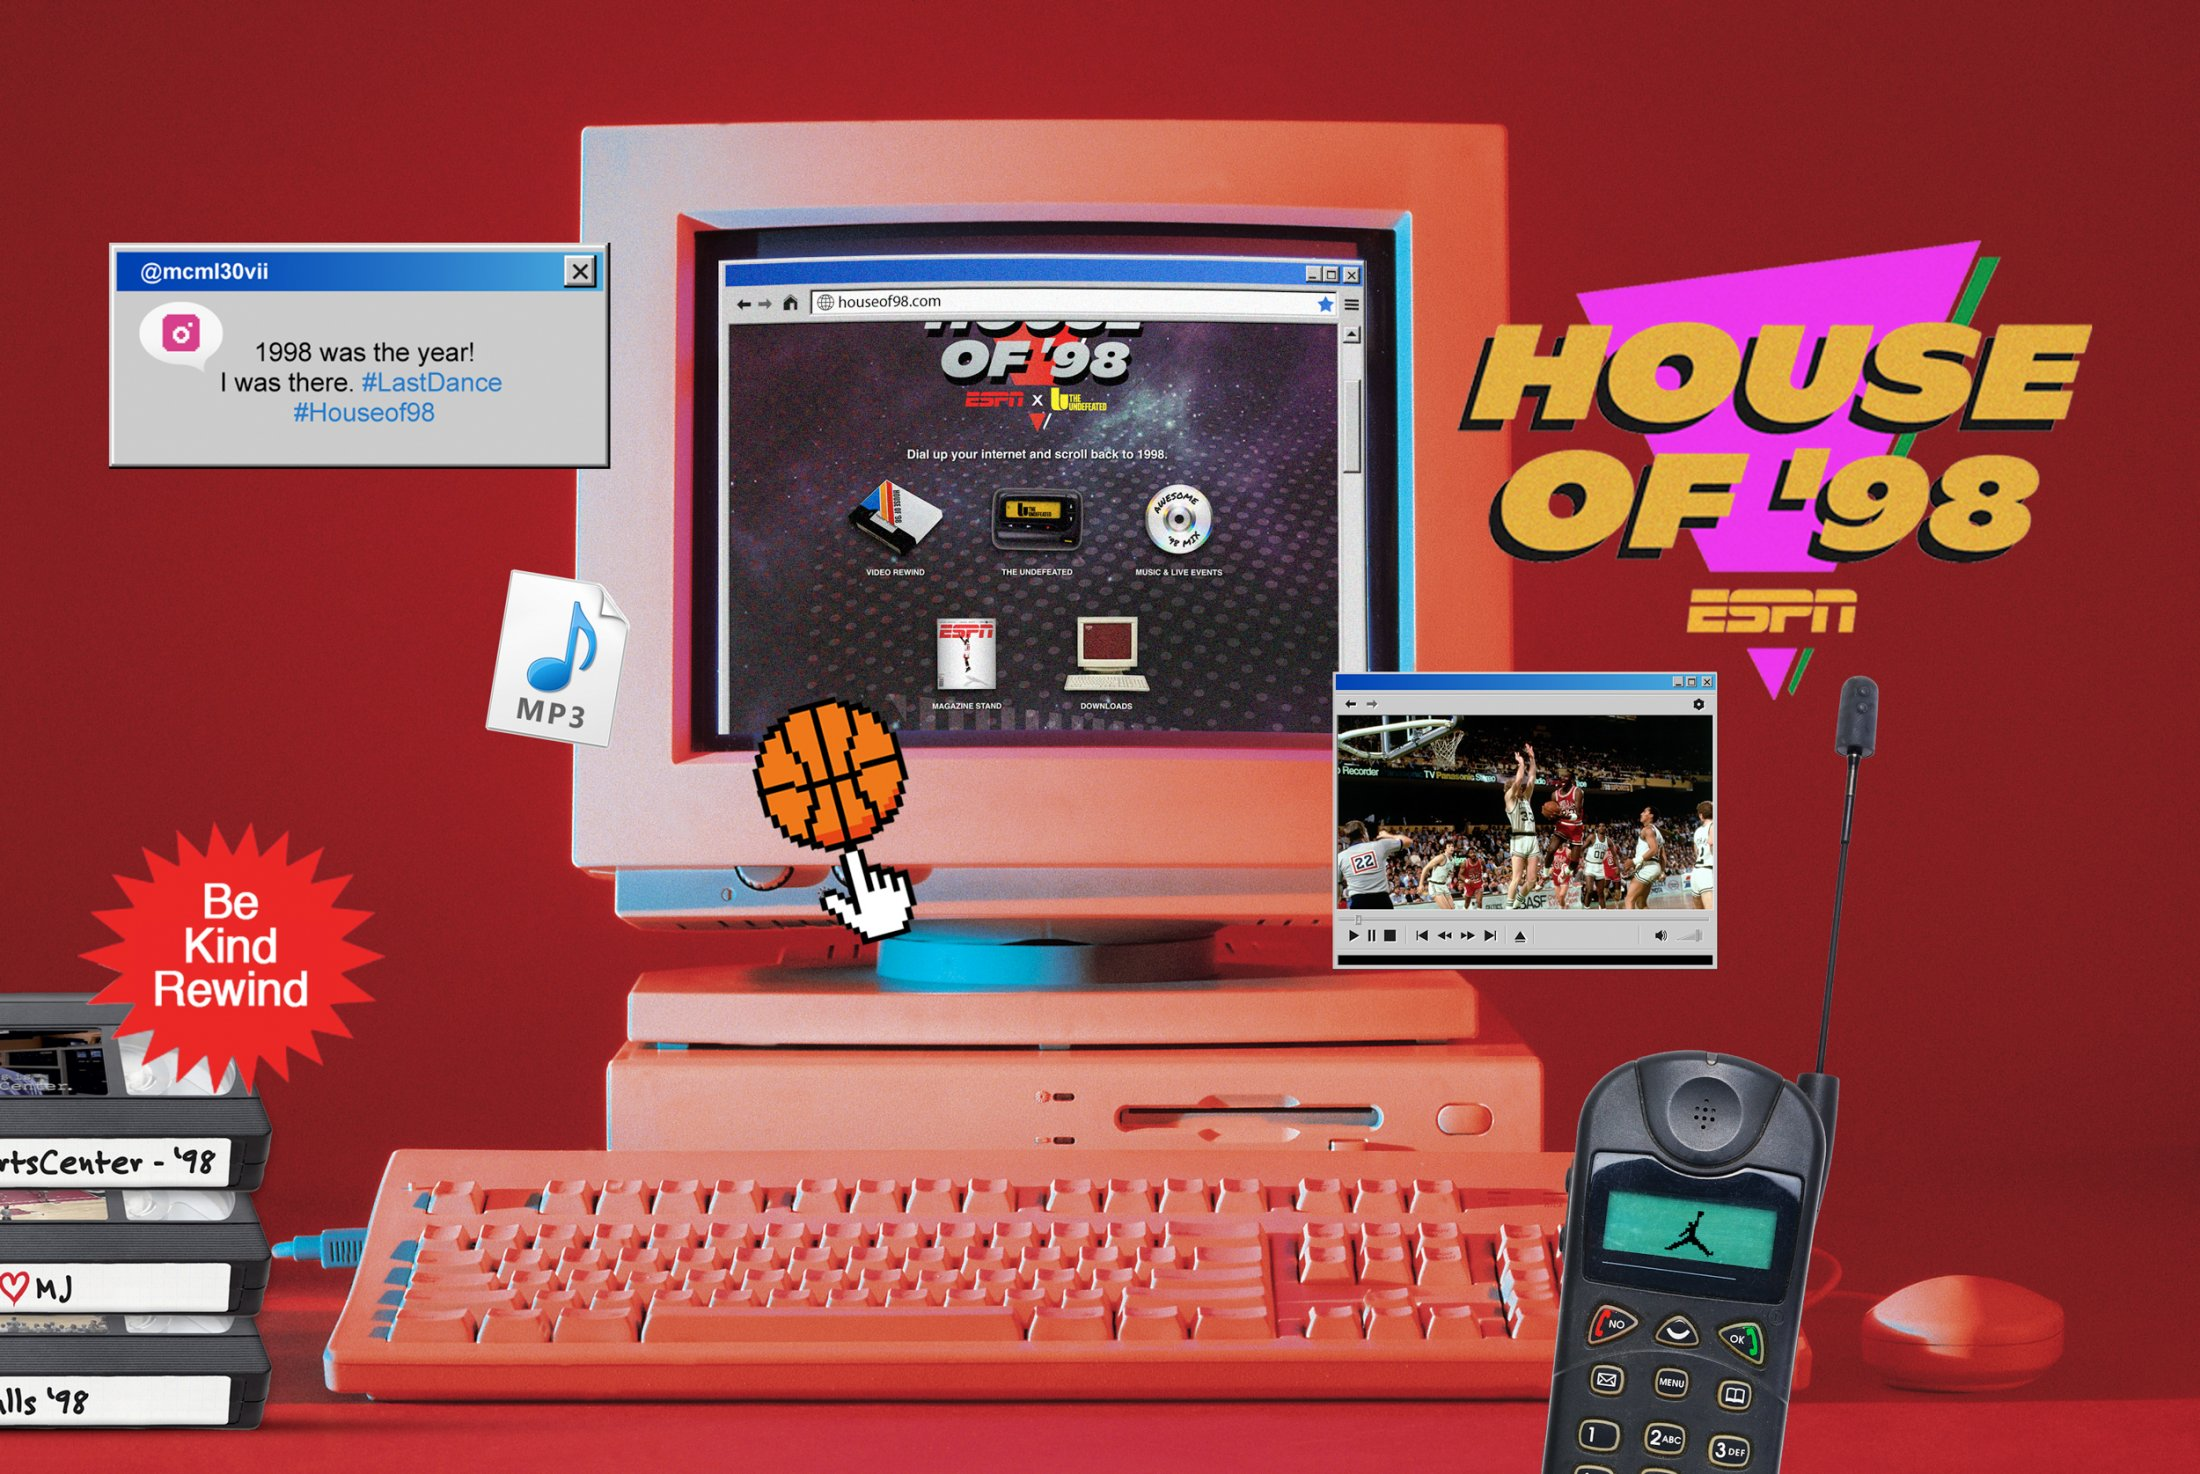 Thumbnail for House of '98